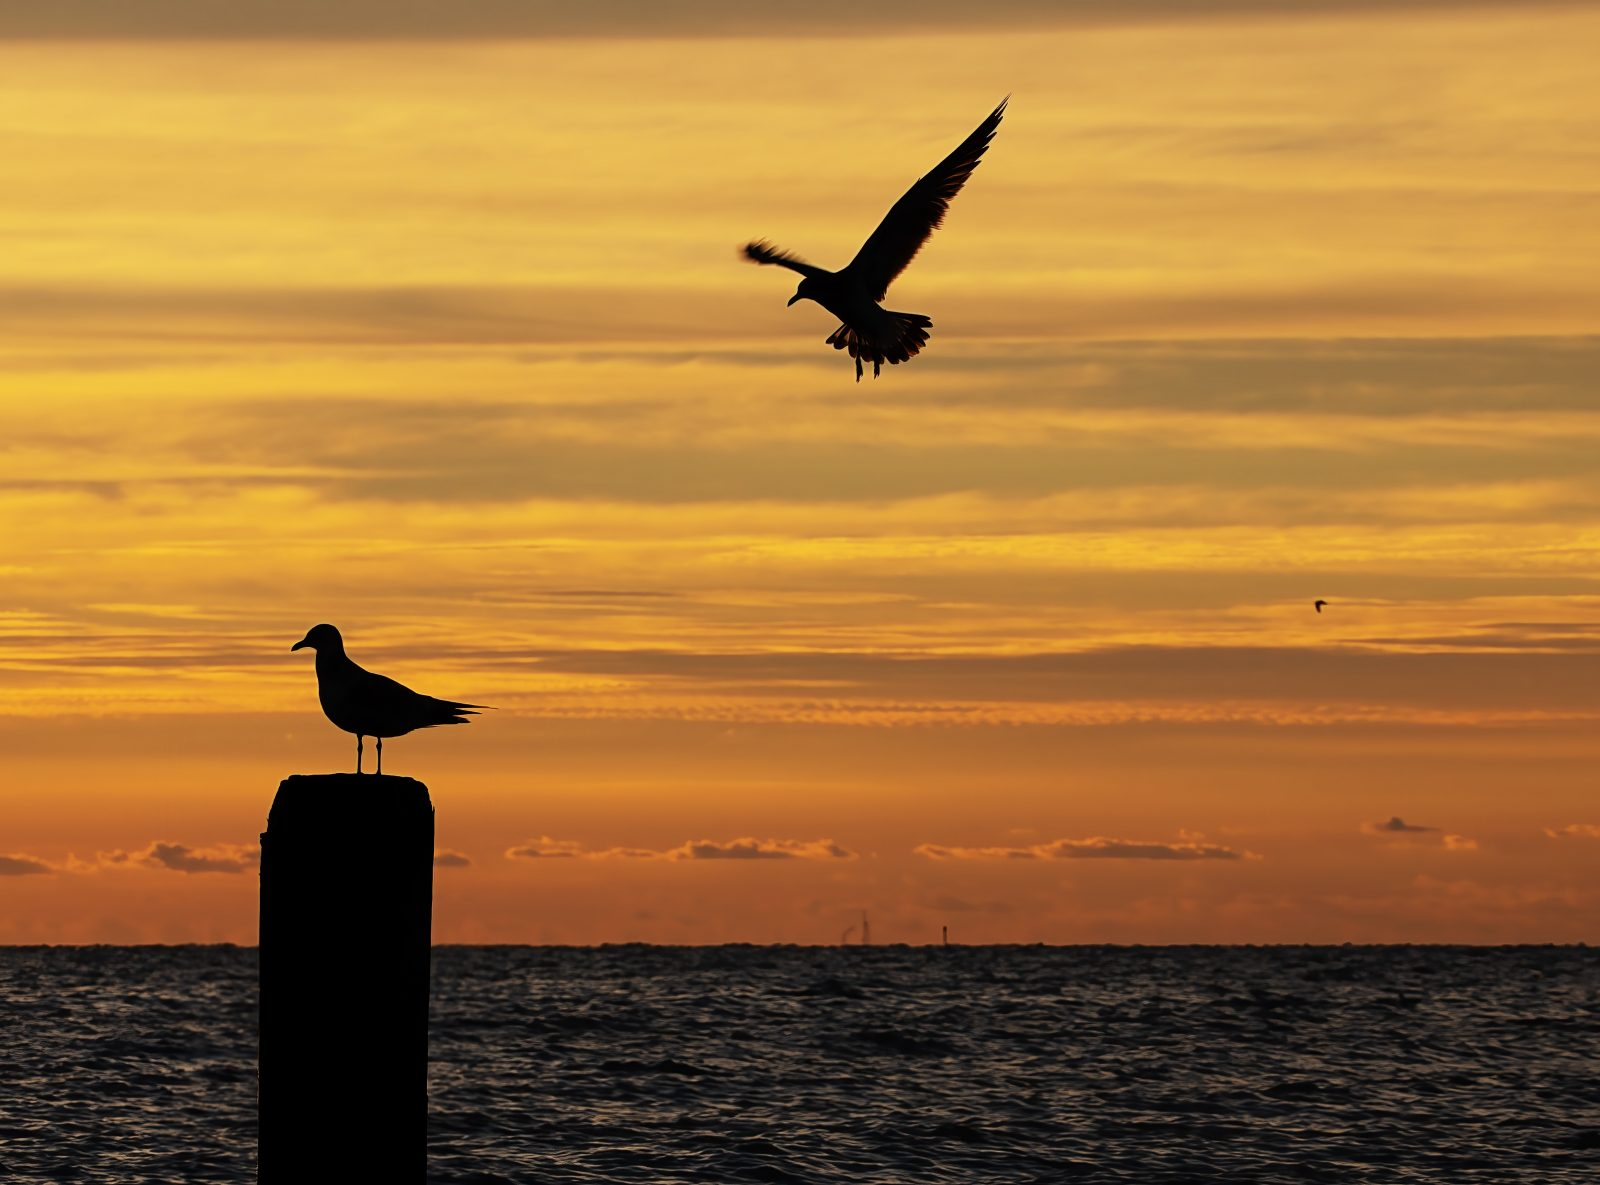 Incoming Gull Silhouette